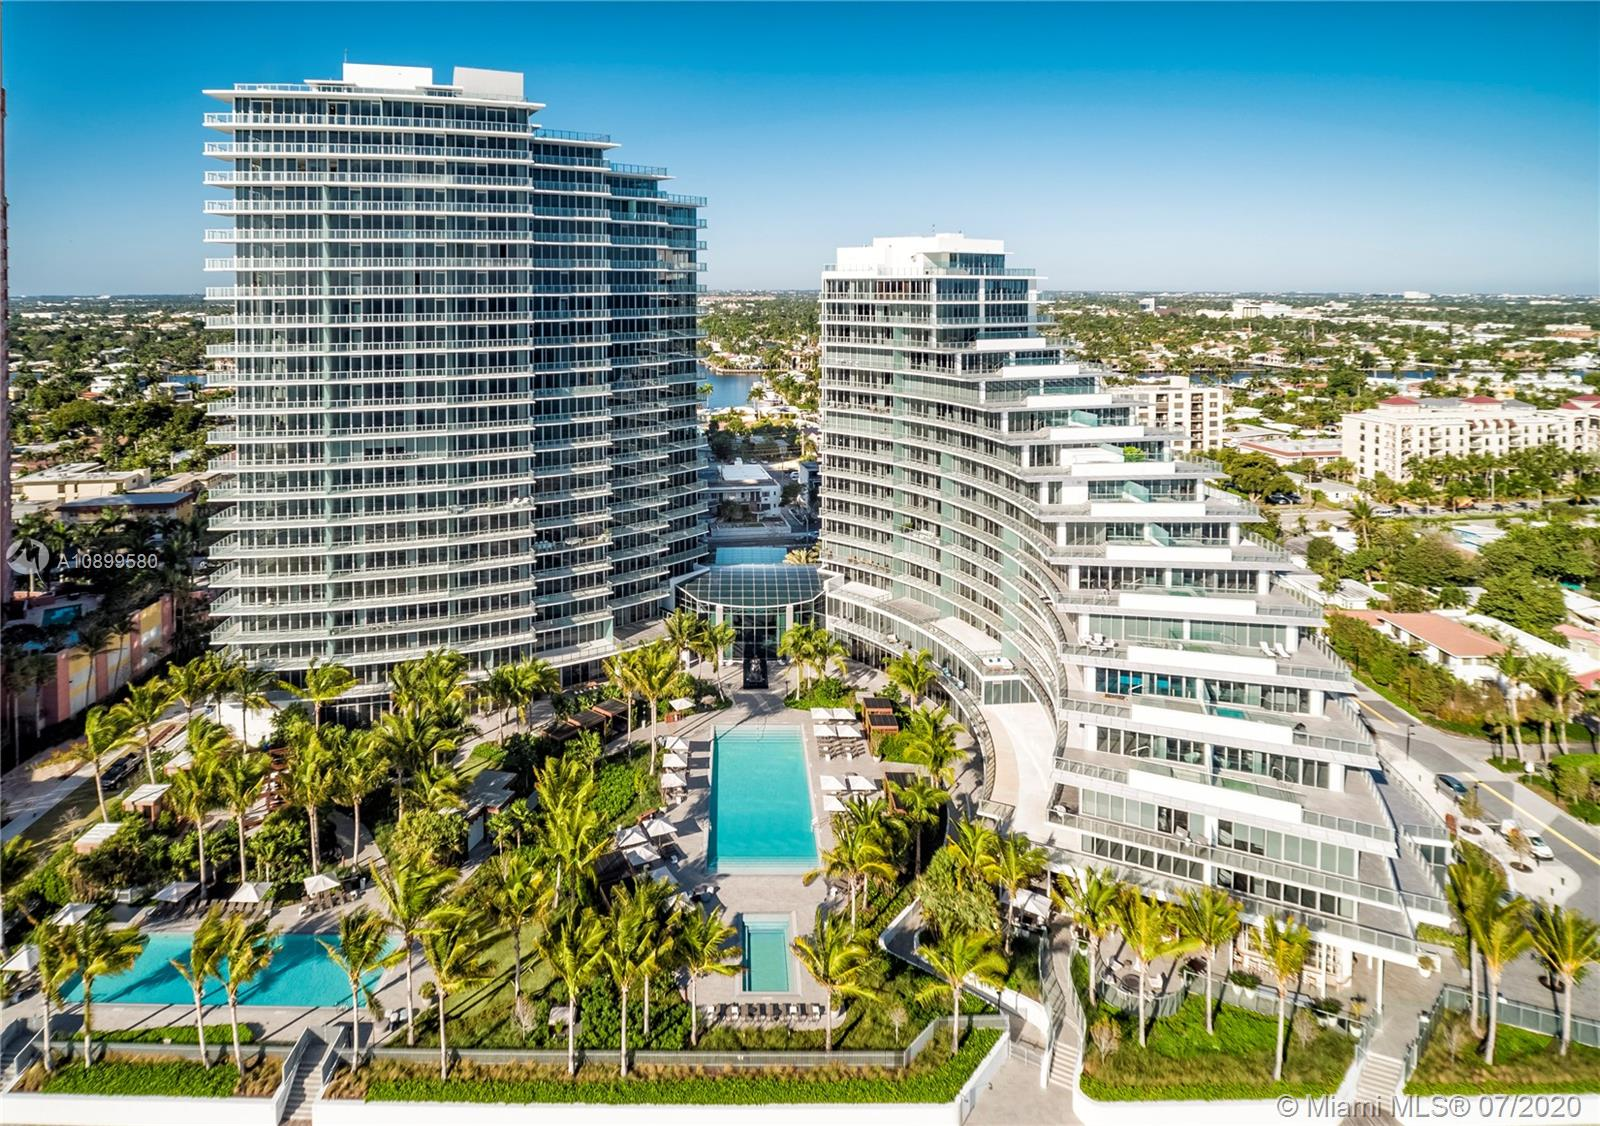 """THIS STUNNING RESIDENCE LOCATED IN THE SOUTH TOWER UNIT 1906 OFFERS THE ULTIMATE """"PENTHOUSE VIEWS WITHOUT THE PENTHOUSE PRICE"""" WITH 180 DEGREE VIEWS OFFERING BREATHTAKING DIRECT OCEAN VIEWS, INTRACOASTAL AND SUNSET CITY VIEWS. THIS ONE OF KIND FLOOR PLAN CONSISTING OF 4 BEDROOMS & 4.5 BATHS FEATURES AN EXQUISITE CHEF'S OPEN KITCHEN WITH WHITE ITALIAN CABINETRY, WHITE MARBLE COUNTERTOPS, TALL SUBZERO WITH WINE STORAGE, SUBZERO FRIDGE, WOLF GAS STOVE & ESPRESSO/CAPPUCCINO INTEGRATED SYSTEM. AUBERGE BEACH RESIDENCES & SPA, SITS DIRECTLY ON 5 ACRES ON THE SAND IN FT LAUDERDALE. WORLD CLASS AMENITIES INCLUDE STATE OF THE ART FITNESS CENTER, GOLF SIMULATOR ROOM, NAPA VALLEY WINE ROOM, SCREENING ROOM, DUNE RESTAURANT AND SPA ETC. RESIDENCE TO BE CURATED VERY SOON!"""